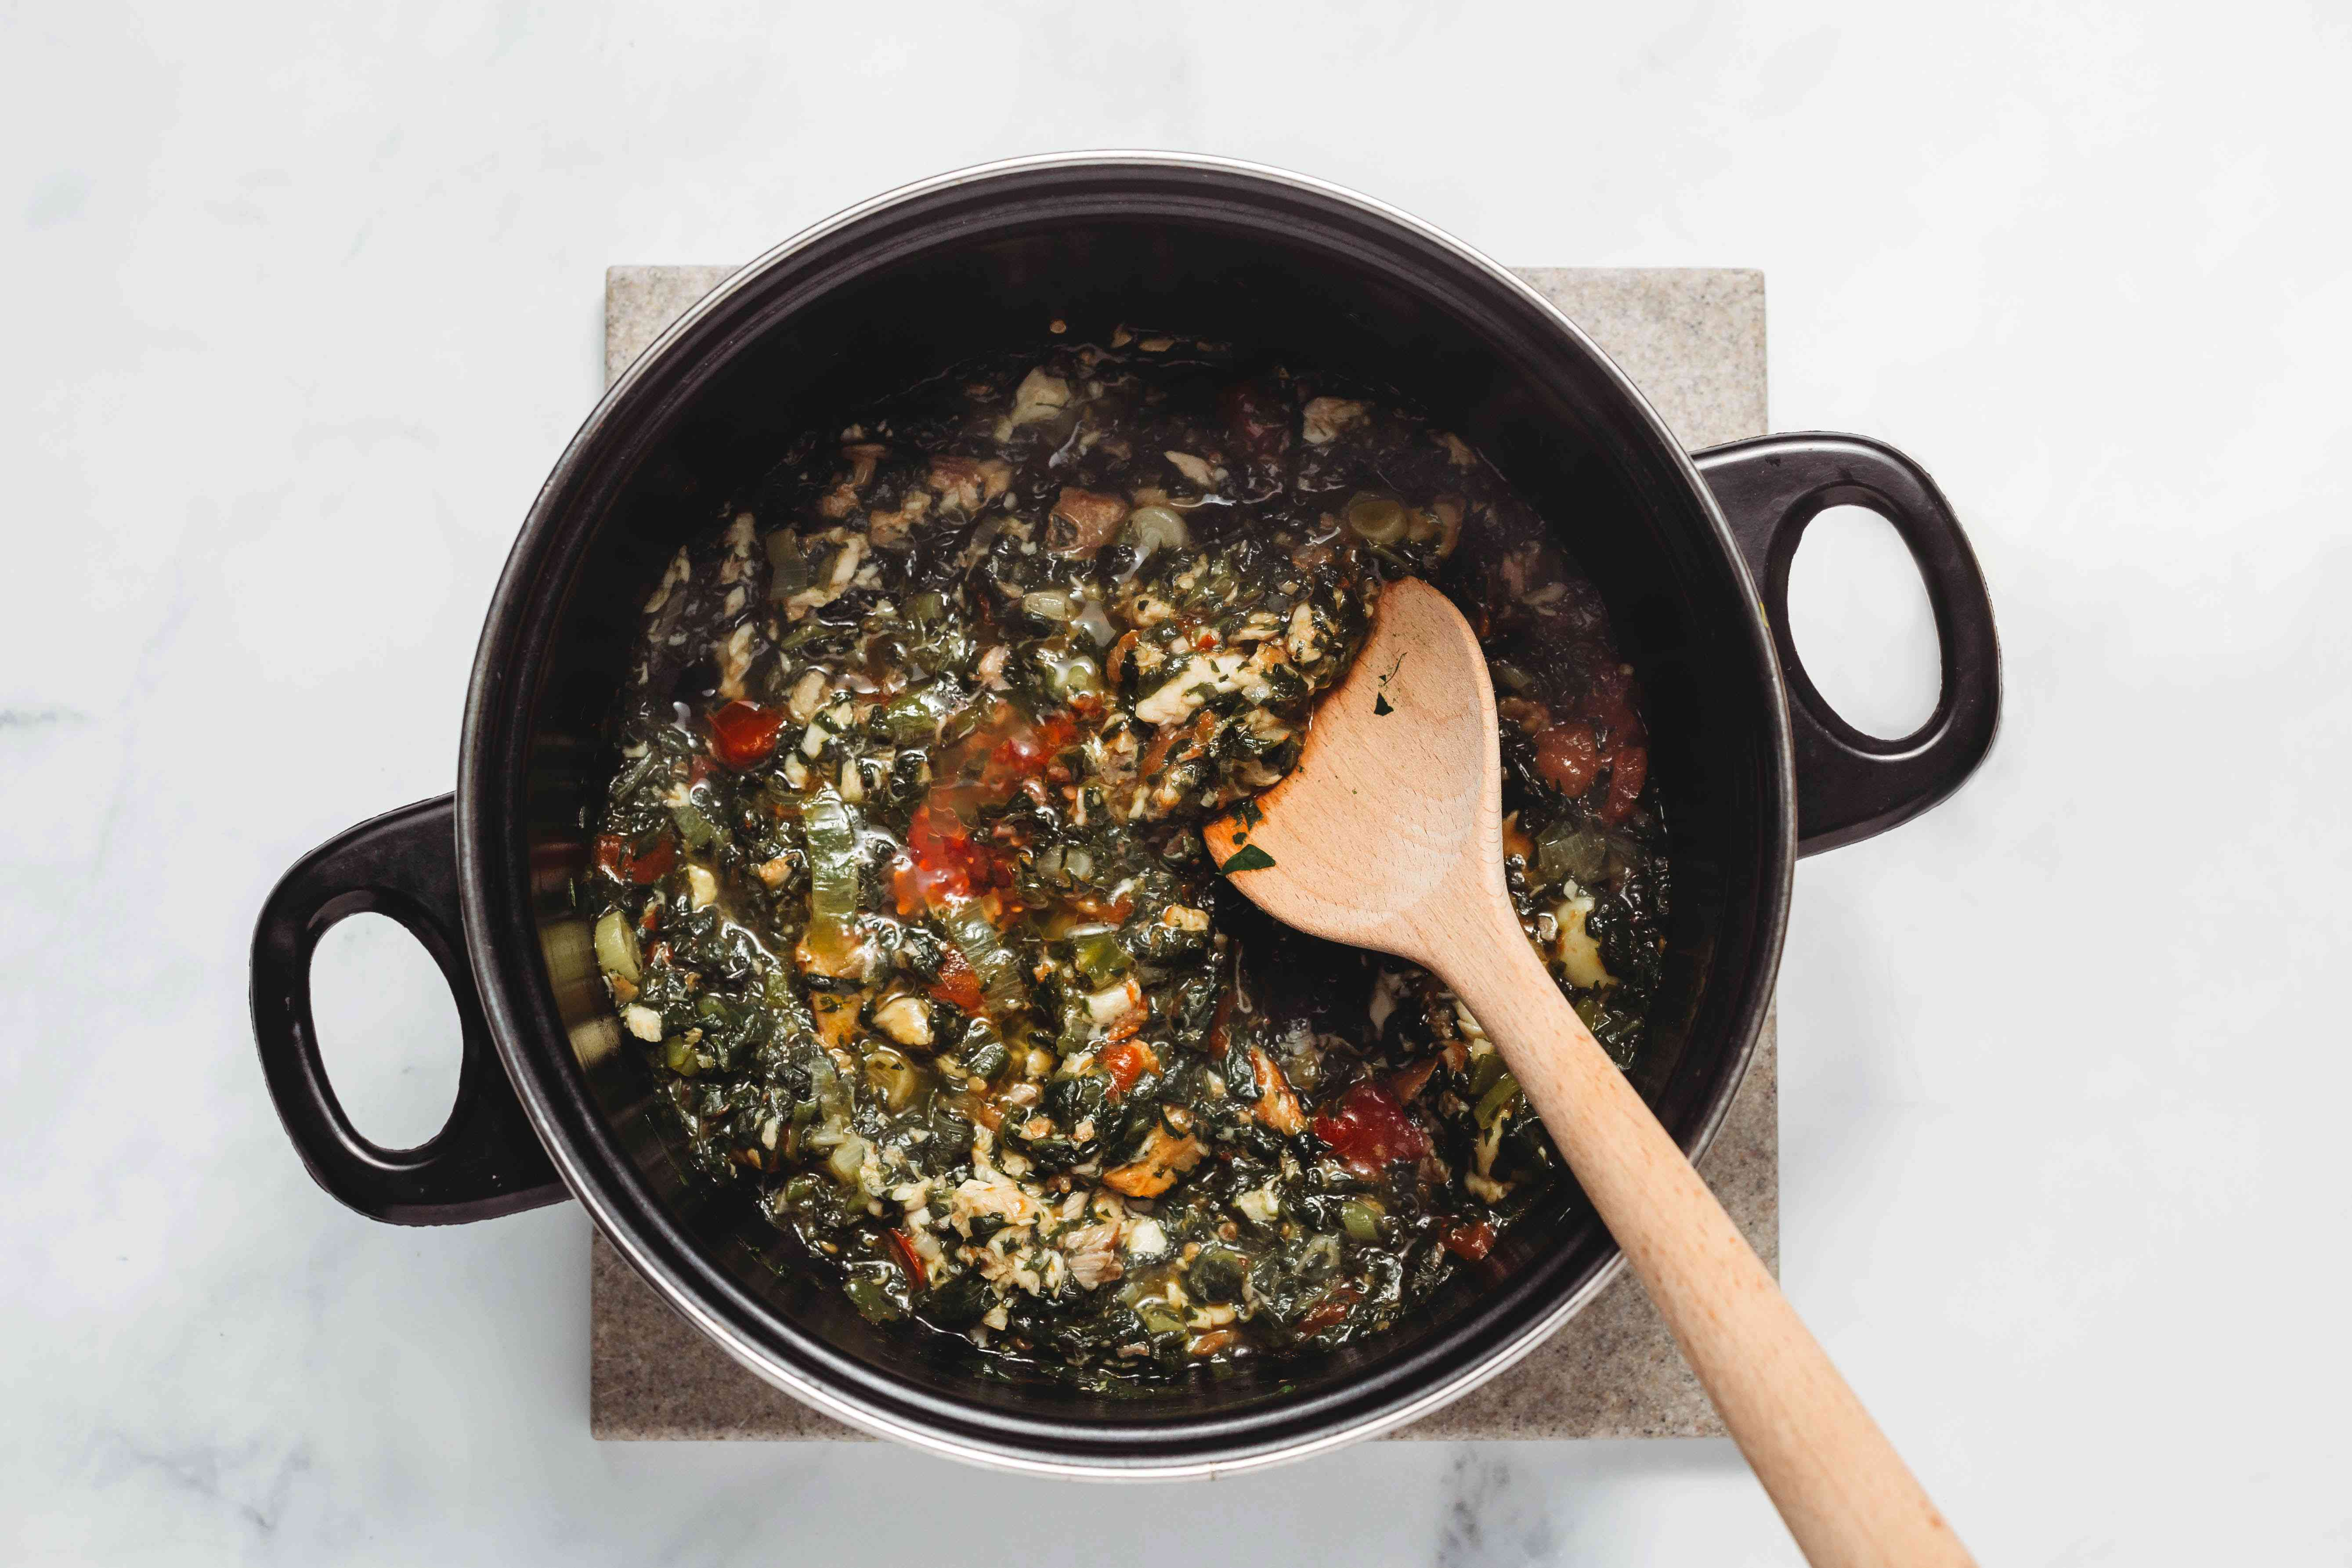 mixing spinach, tomato and onion mixture in a large pot with a wooden spoon